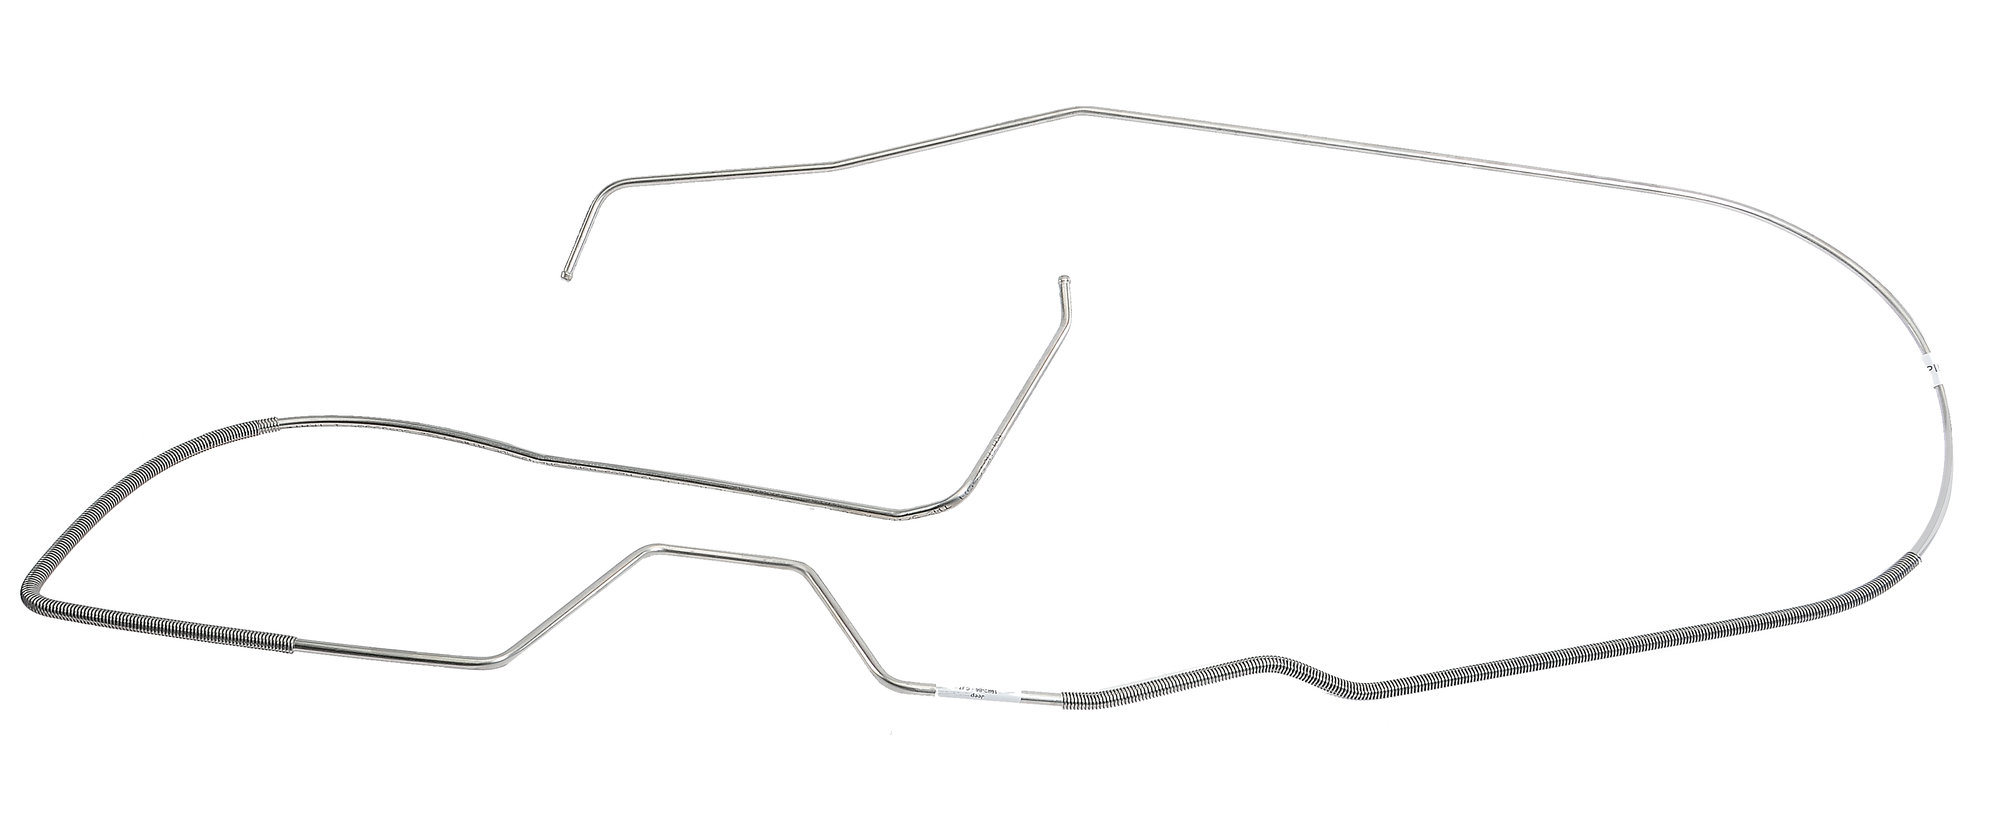 Classic Tube JEF1004 Replacement Stainless Steel Fuel Tank